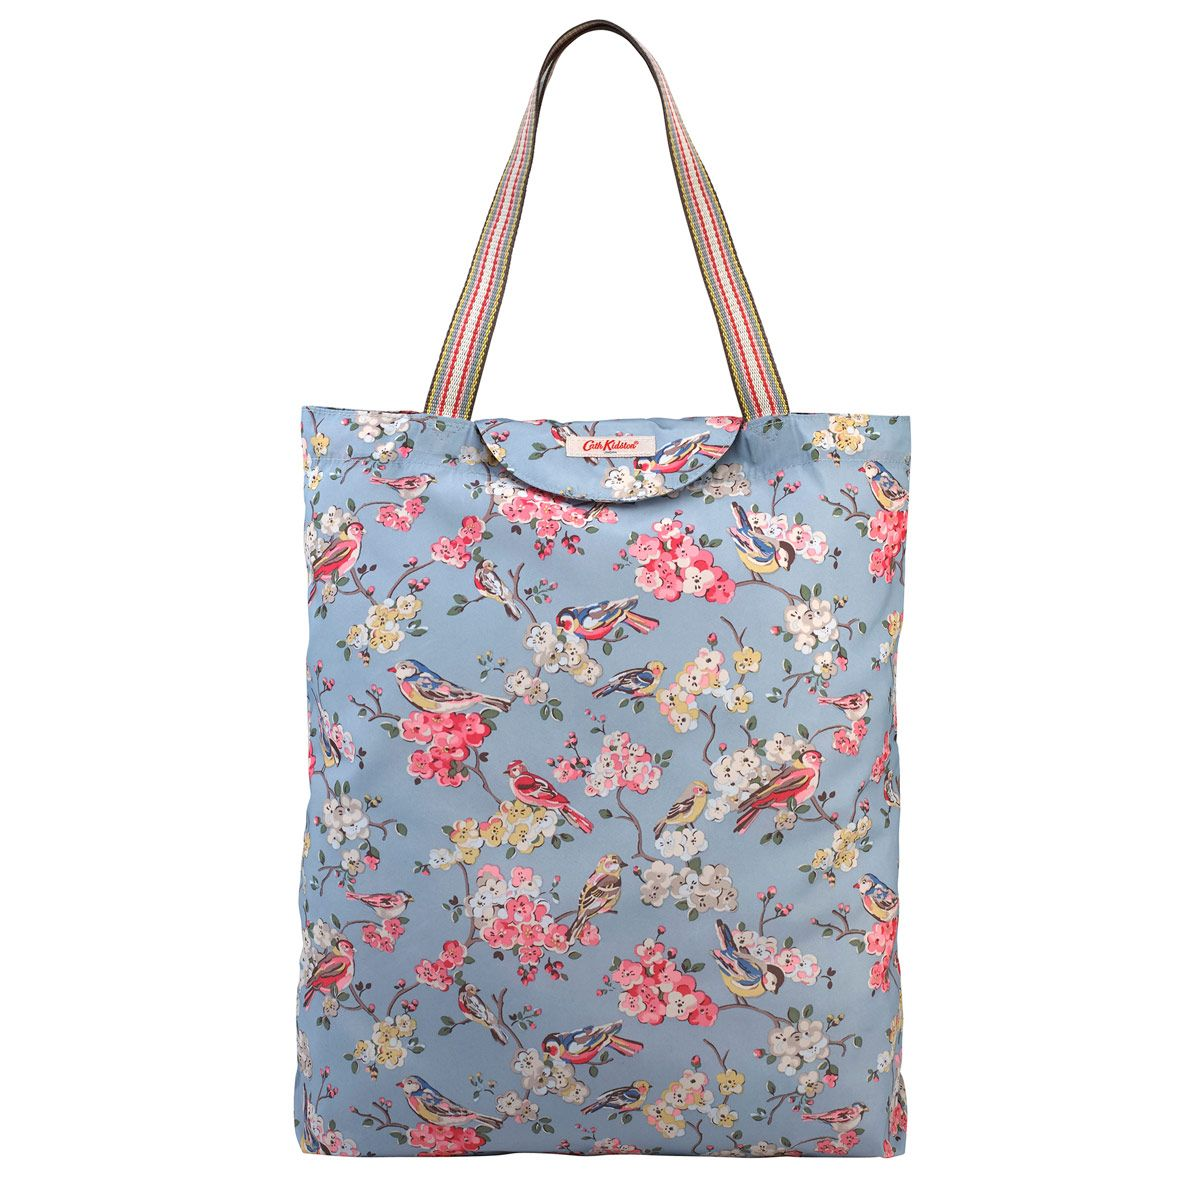 My Travel Packing List: Cath Kidston Foldaway Shopping Bag ...